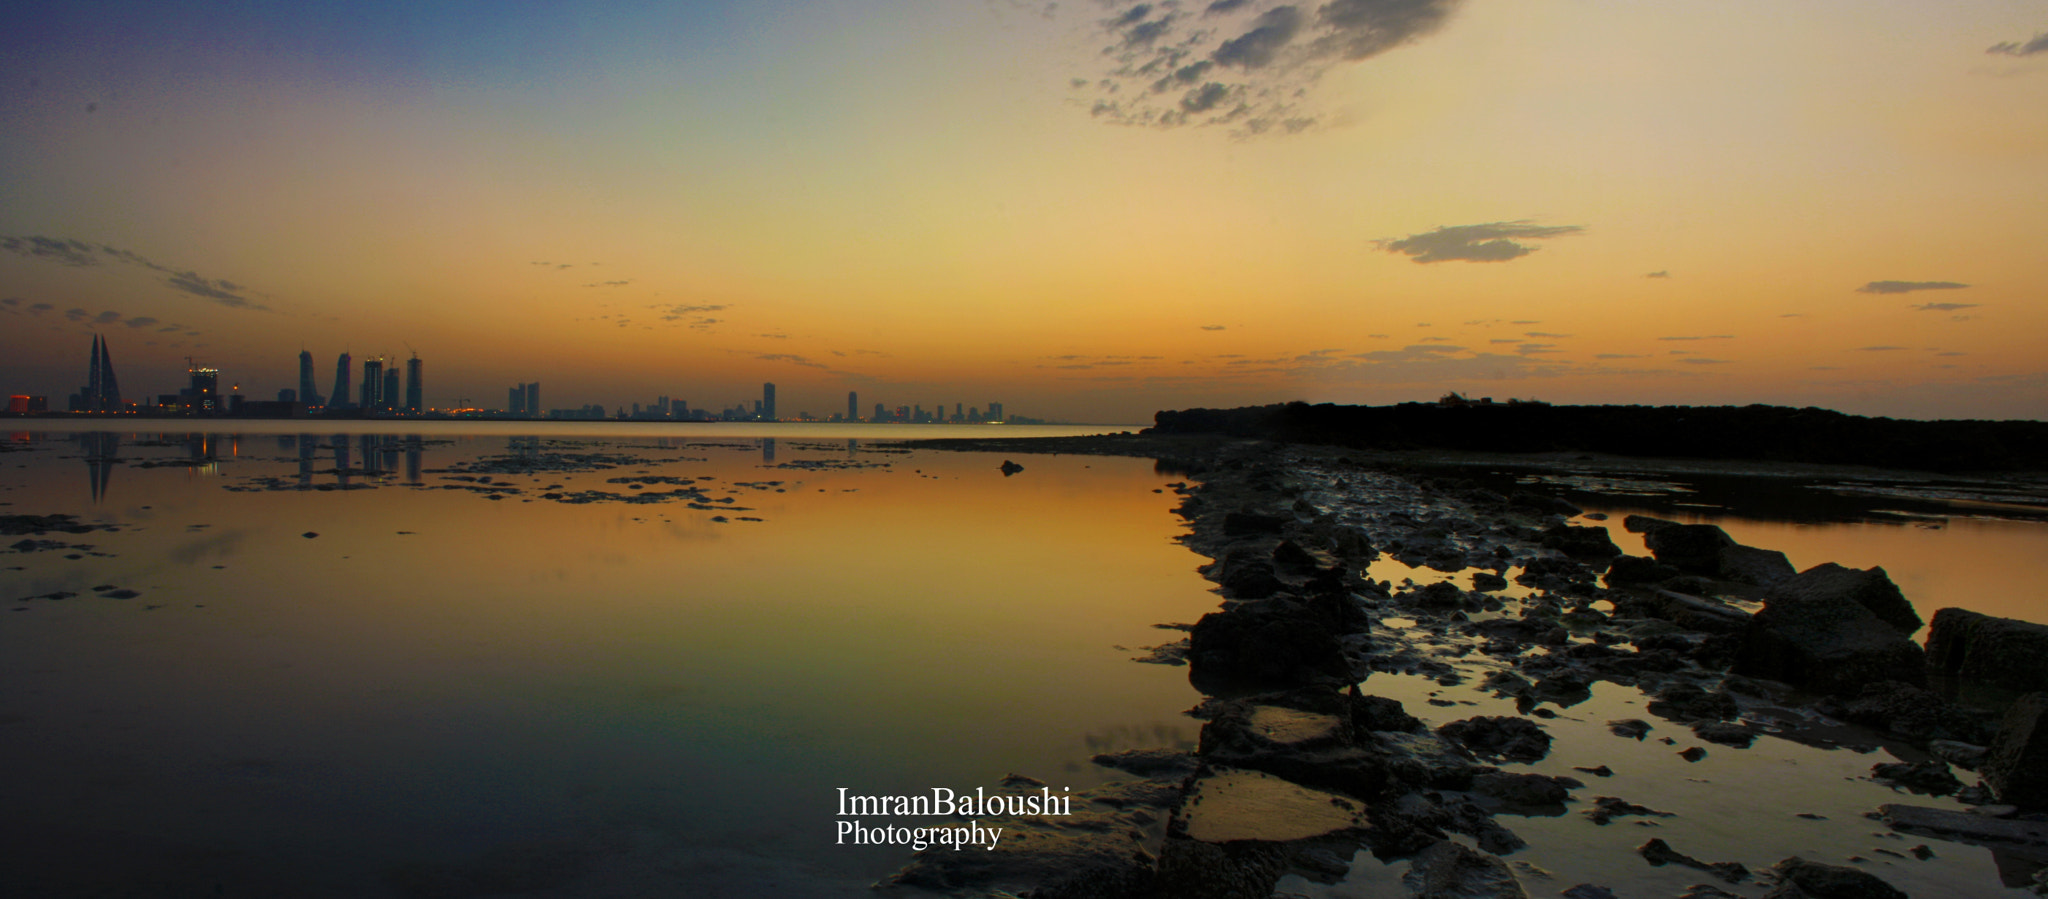 Photograph another sunset by Imran Baloushi on 500px